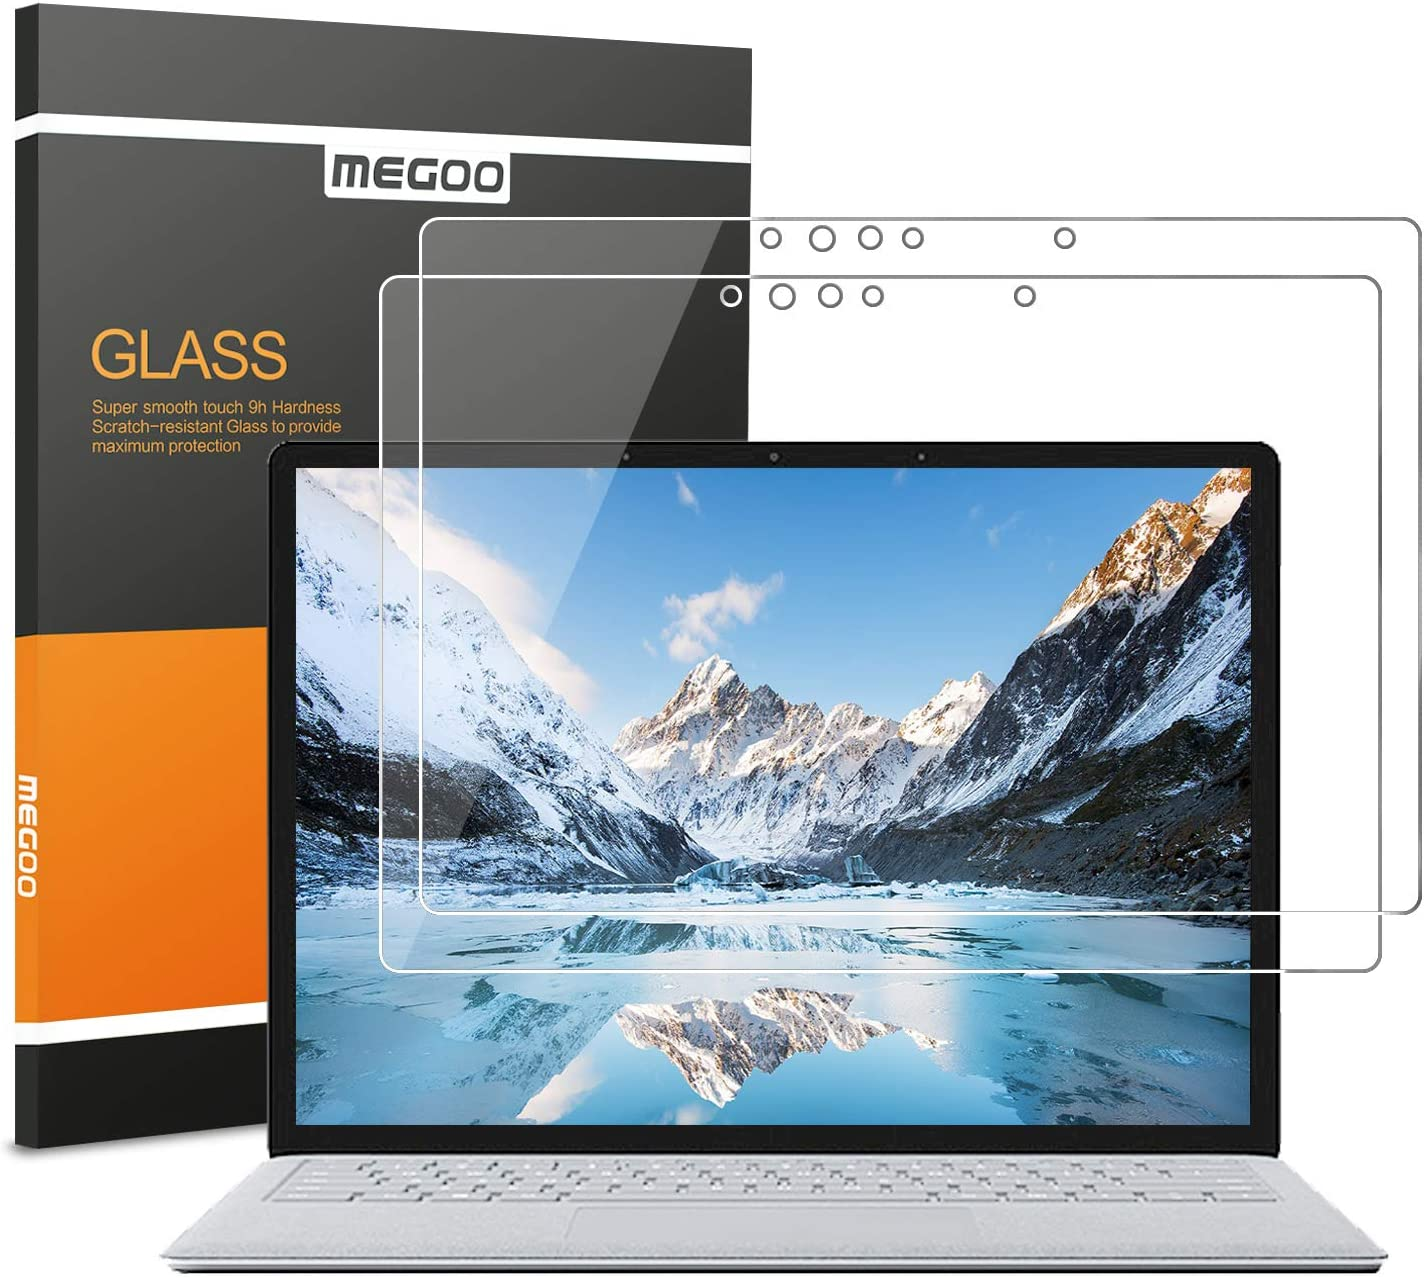 [2 Pack] MEGOO Surface Laptop 3 (13.5 Inch) Screen Protector [Tempered Glass], [Ultra Clear] [Smooth Touching] [Quick Response] Compatible for Microsoft Surface Laptop 2 / Surface Laptop - 13.5 Inch